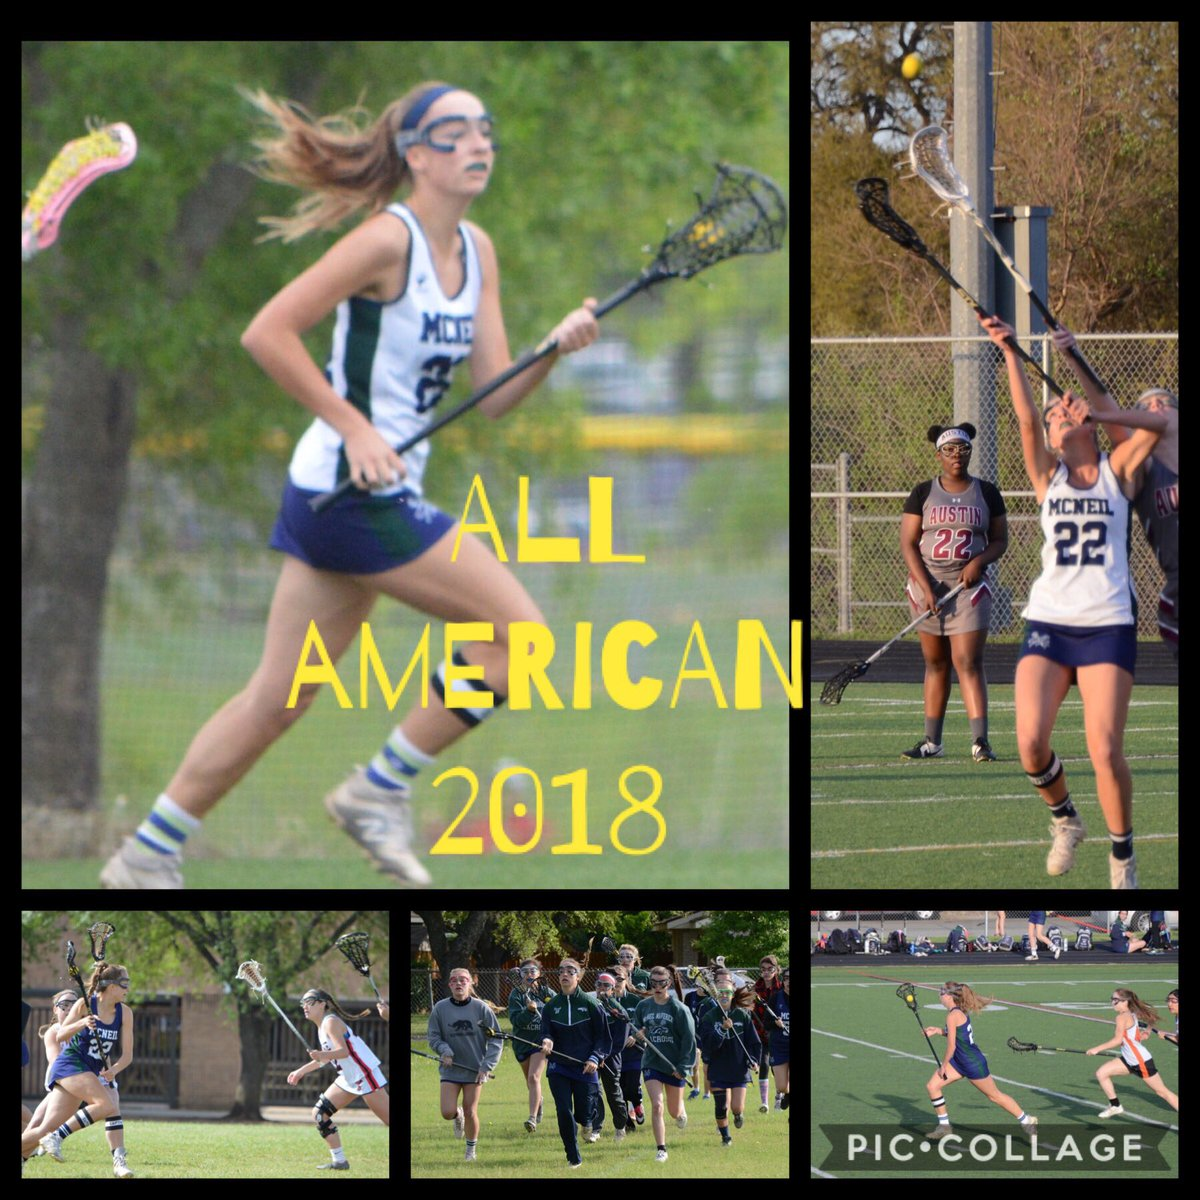 ALL AMERICAN @SarahDelahunt22!!!! We are SO PROUD of you!!! #cantcontainher #captain #leader #assists #causedturnovers #goals #wholepackage #shewillscoreonyoueverytime #doubleteamher #tripleteamher #doesntevenslowherdown @MHSMavs @RoundRockISD<br>http://pic.twitter.com/Jm9Rz19eqP